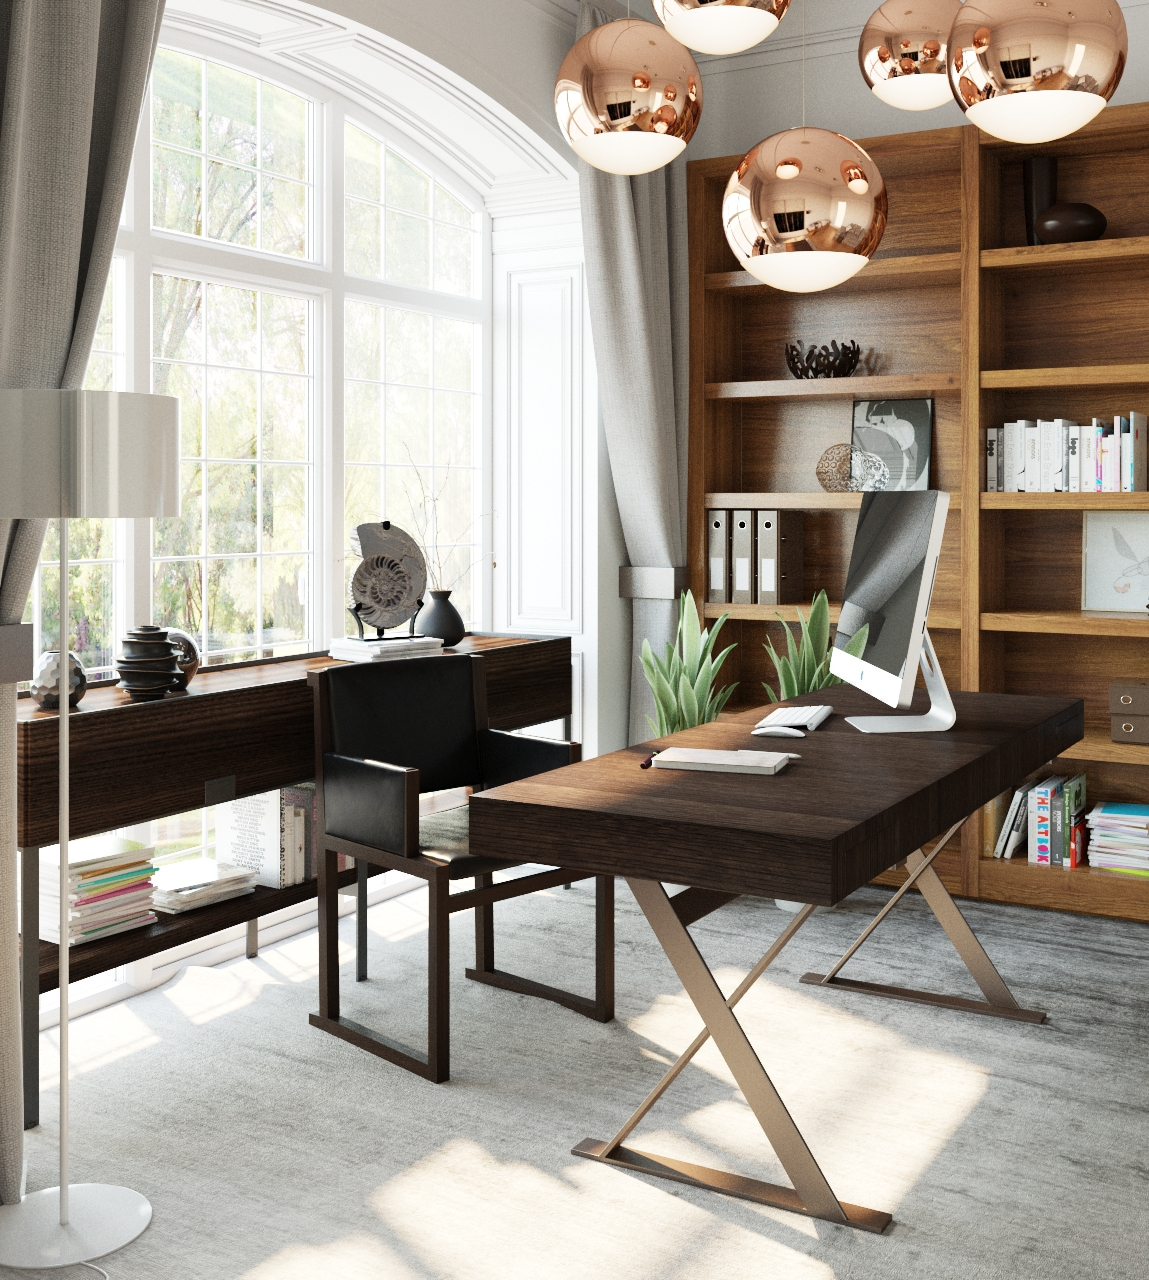 30 Incredible Home Office Den Design Ideas: 35 Modern Home Office Design Ideas